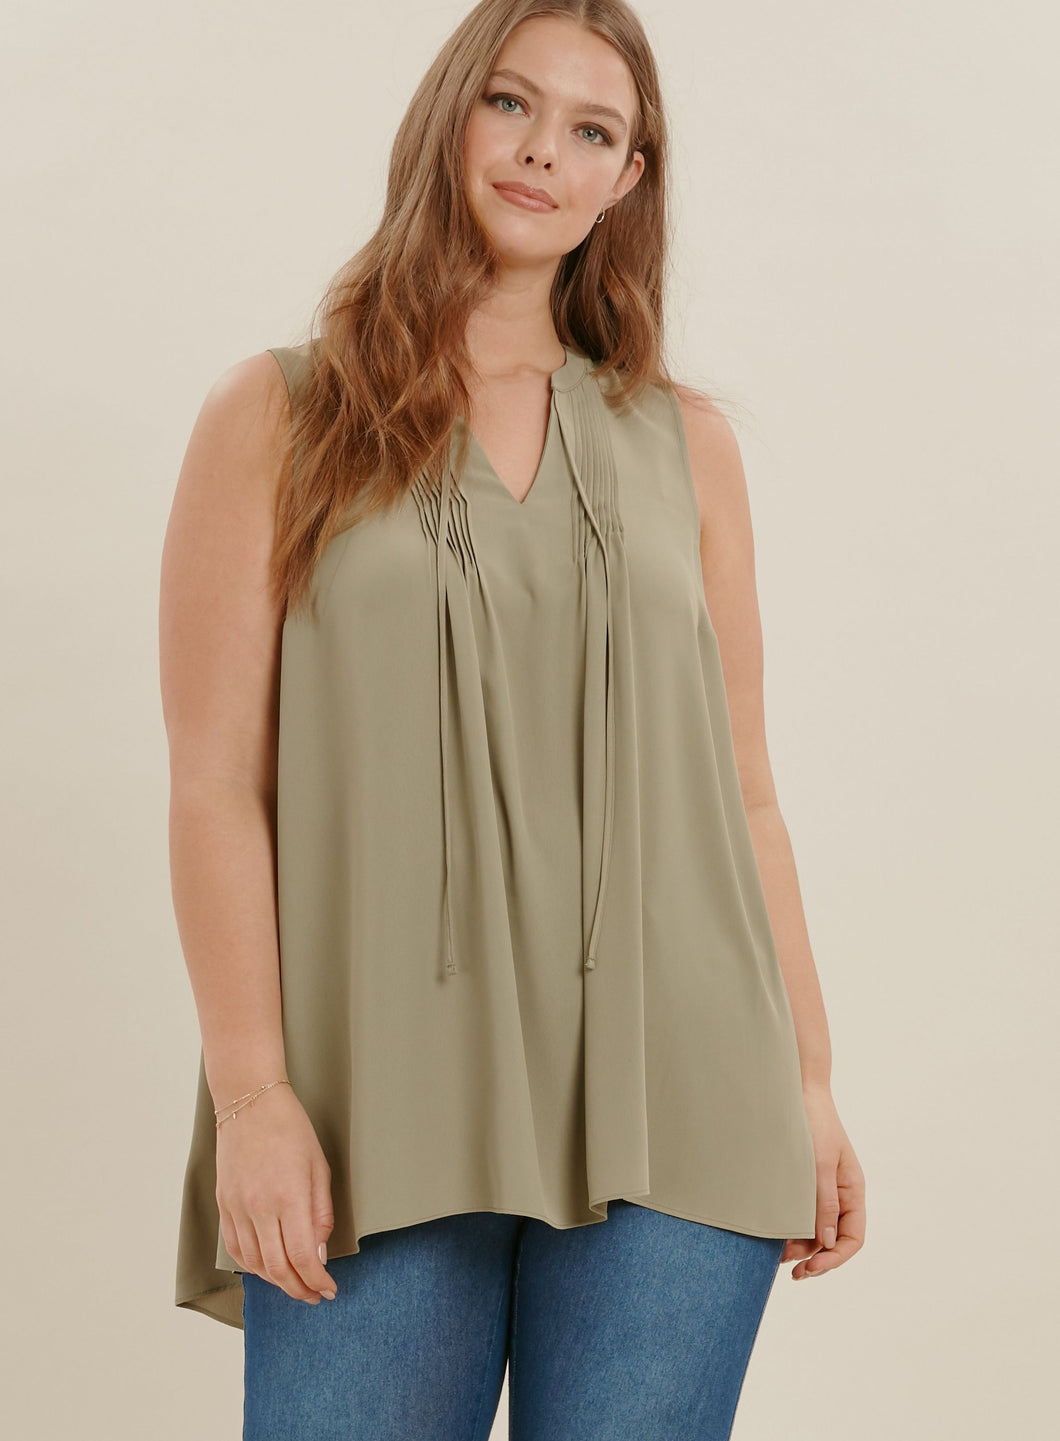 Ex Evans Embroidered V-Neck Sleeveless Blouse Top